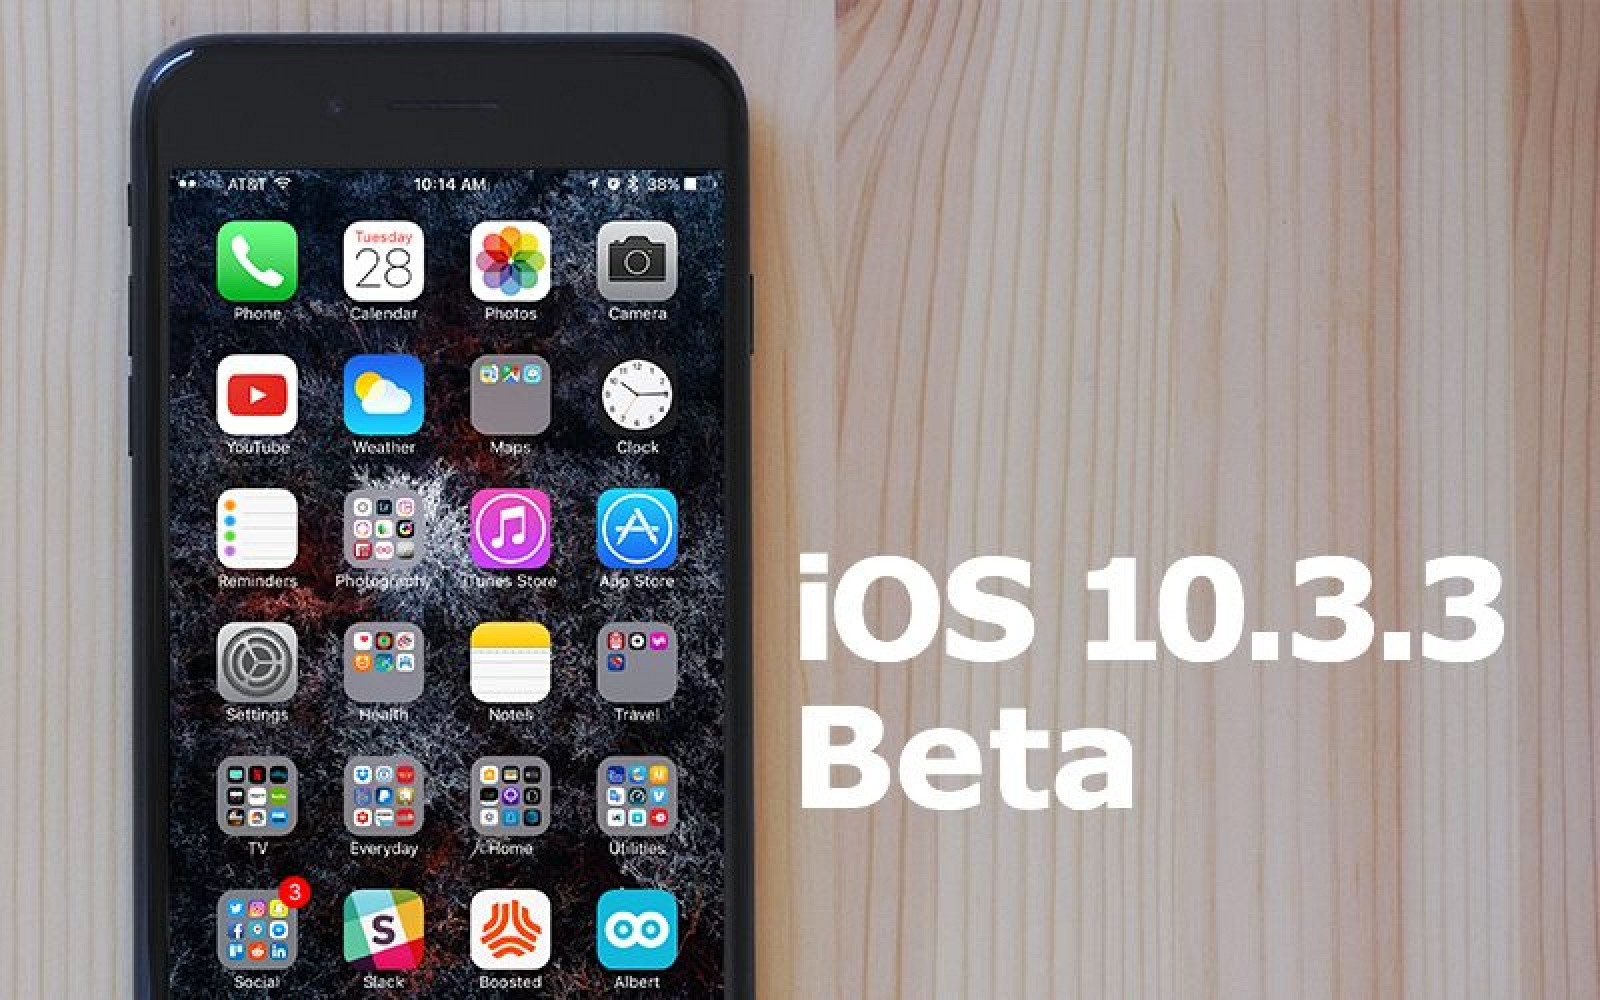 apple seeds third beta of ios 10 3 3 to developers update public beta available macrumors. Black Bedroom Furniture Sets. Home Design Ideas